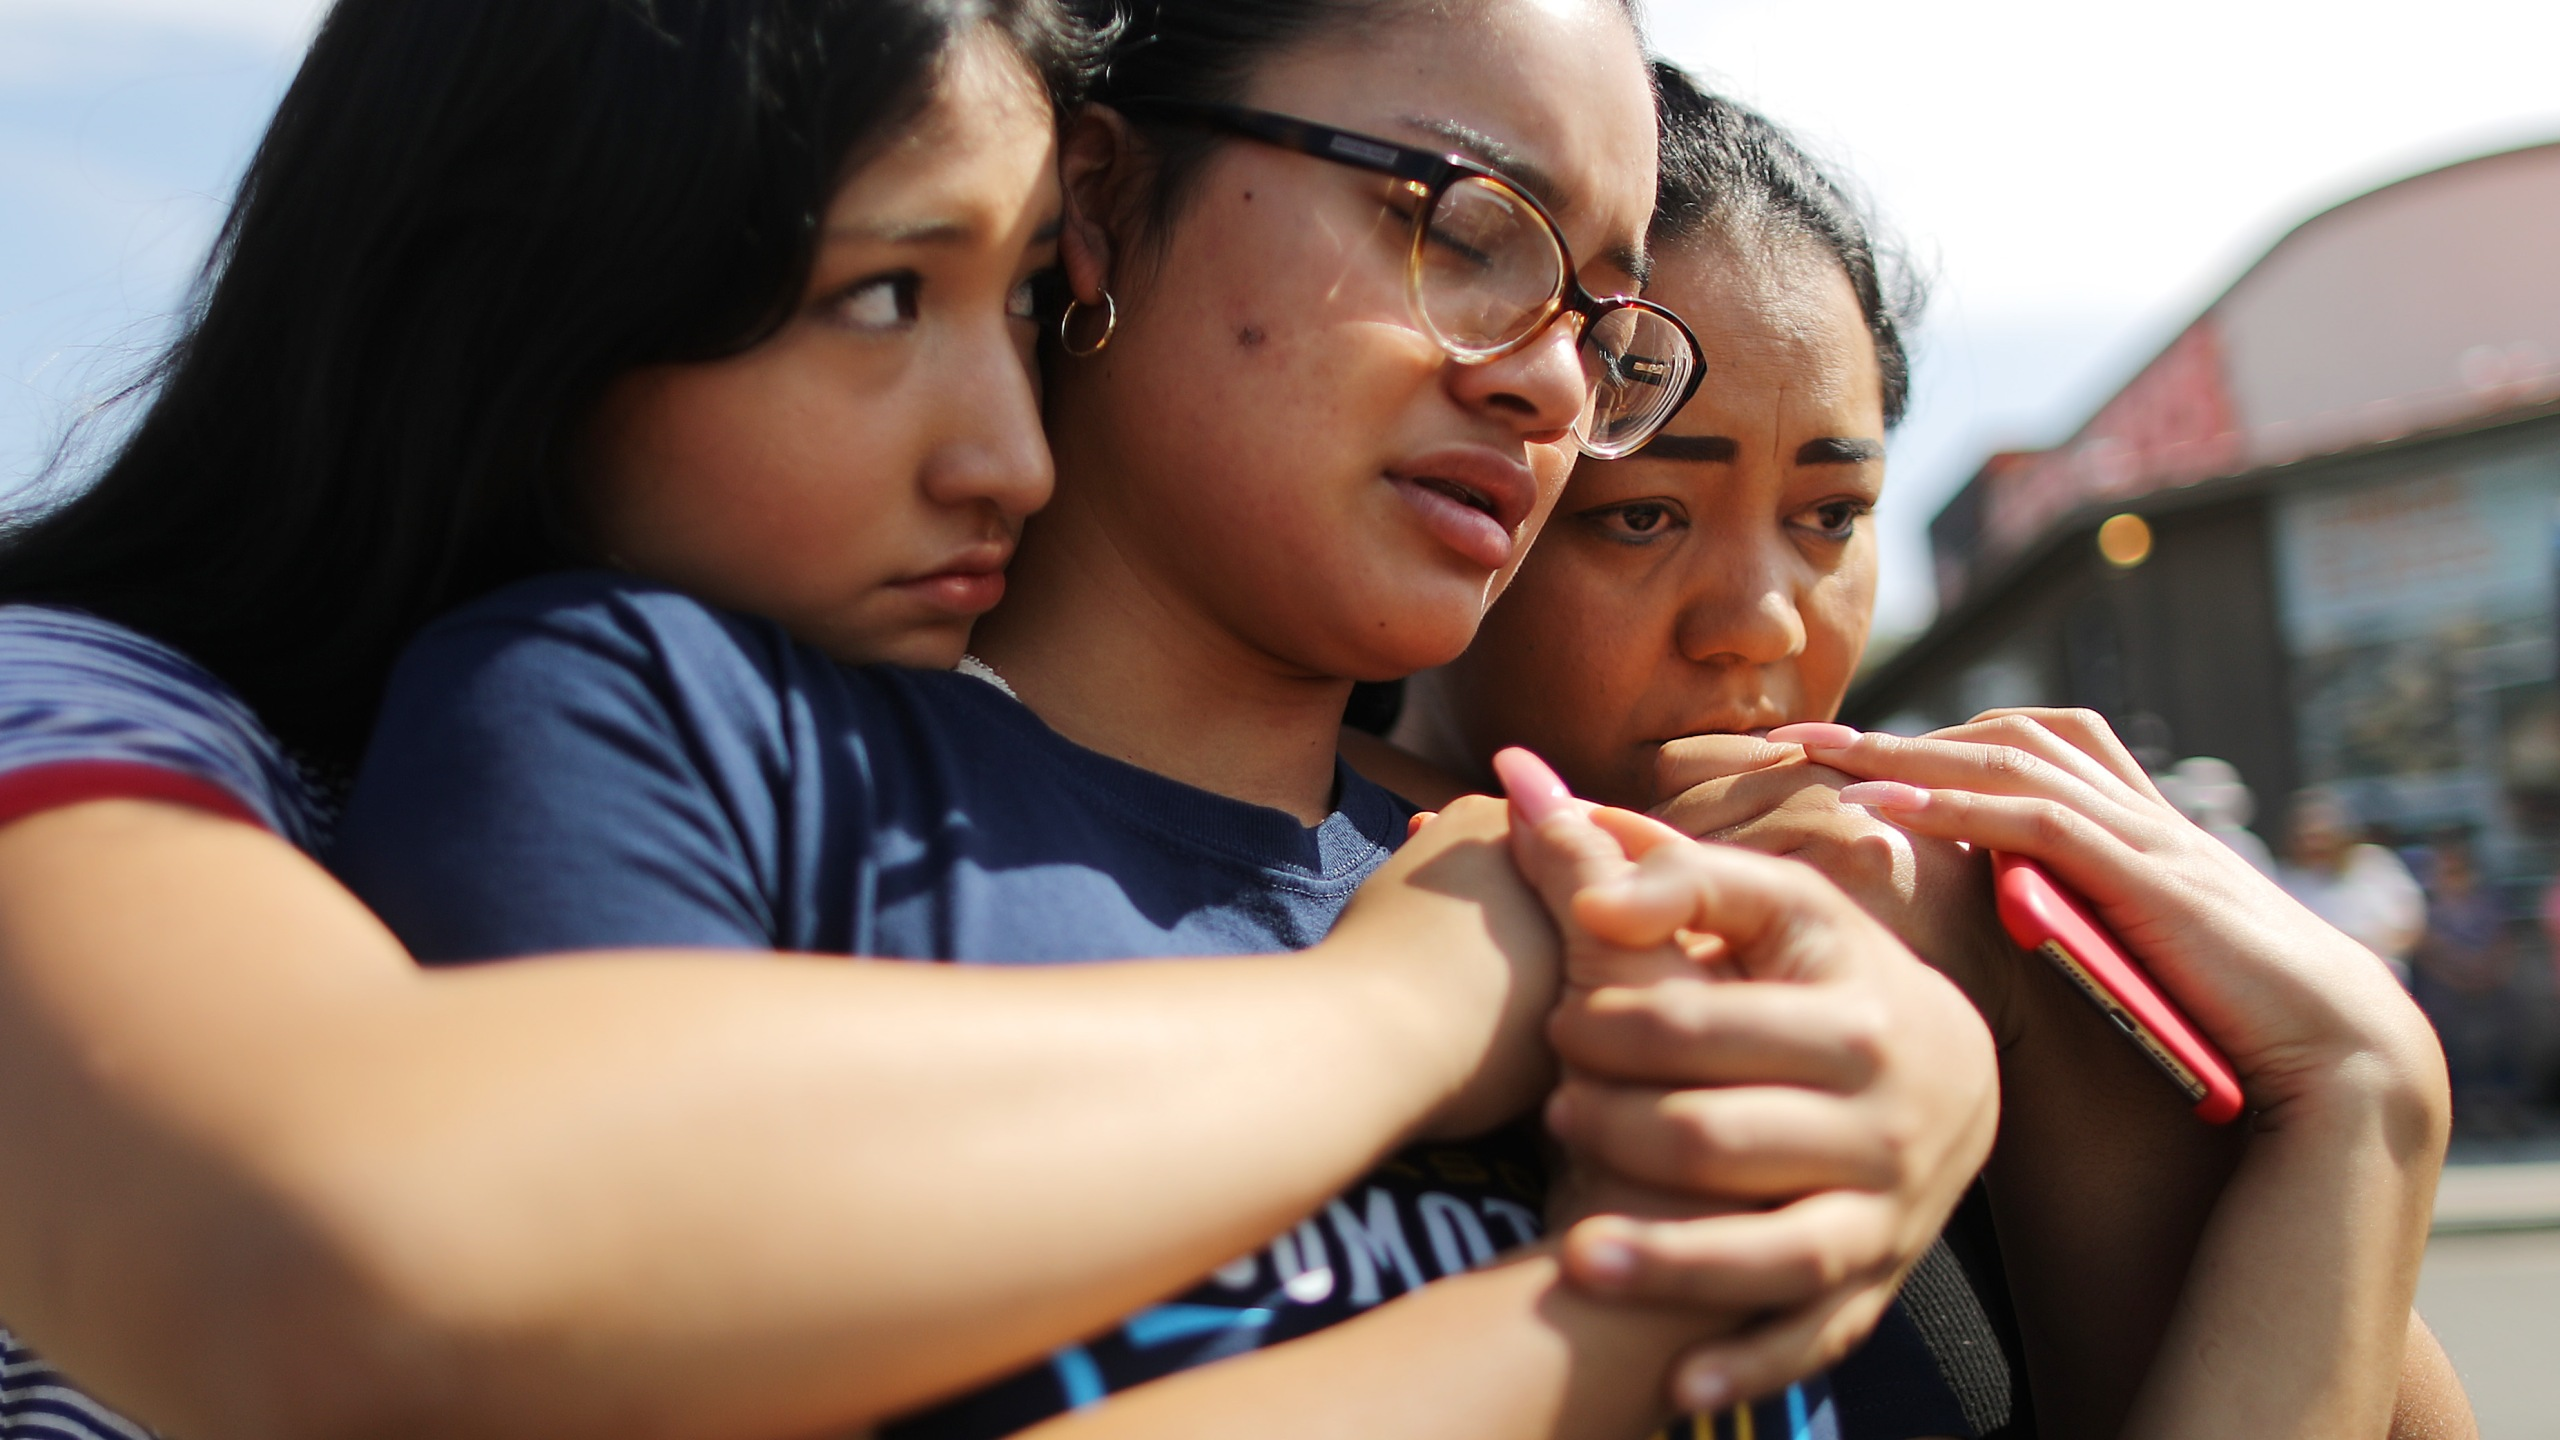 Mother Aidee Gutierrez, right, originally from Mexico, and daughters Marlene Gutierrez and Brissa Martinez embrace at a makeshift memorial outside Walmart in El Paso, near the scene of a mass shooting that days before left at least 22 people dead, on Aug. 5, 2019. (Credit: Mario Tama / Getty Images)